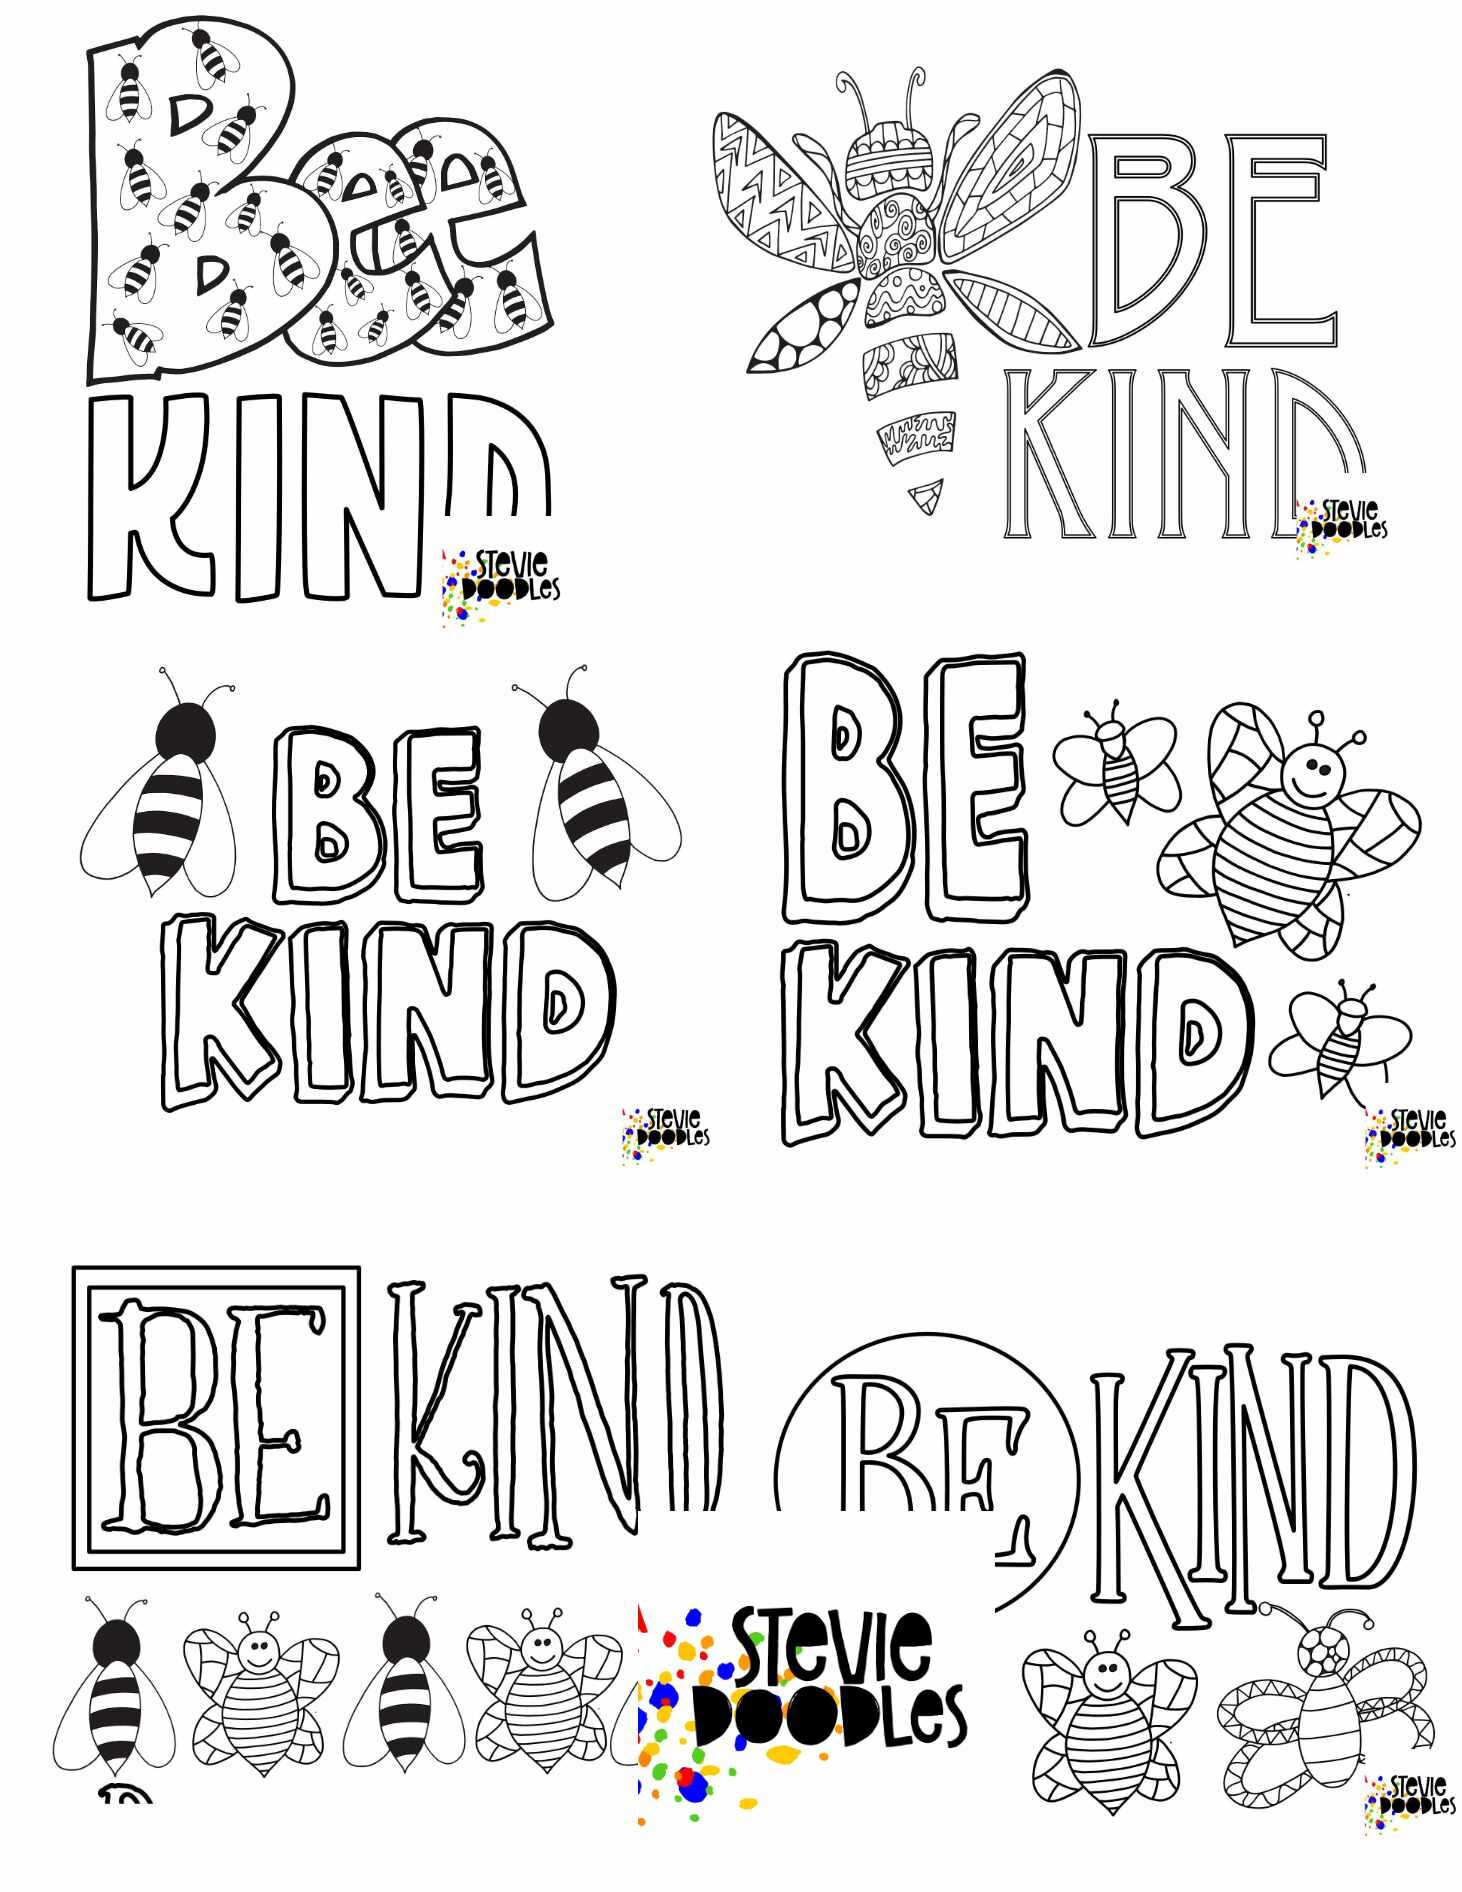 Free Bee Kind Coloring Pages Stevie Doodles Free Printable Coloring Pages